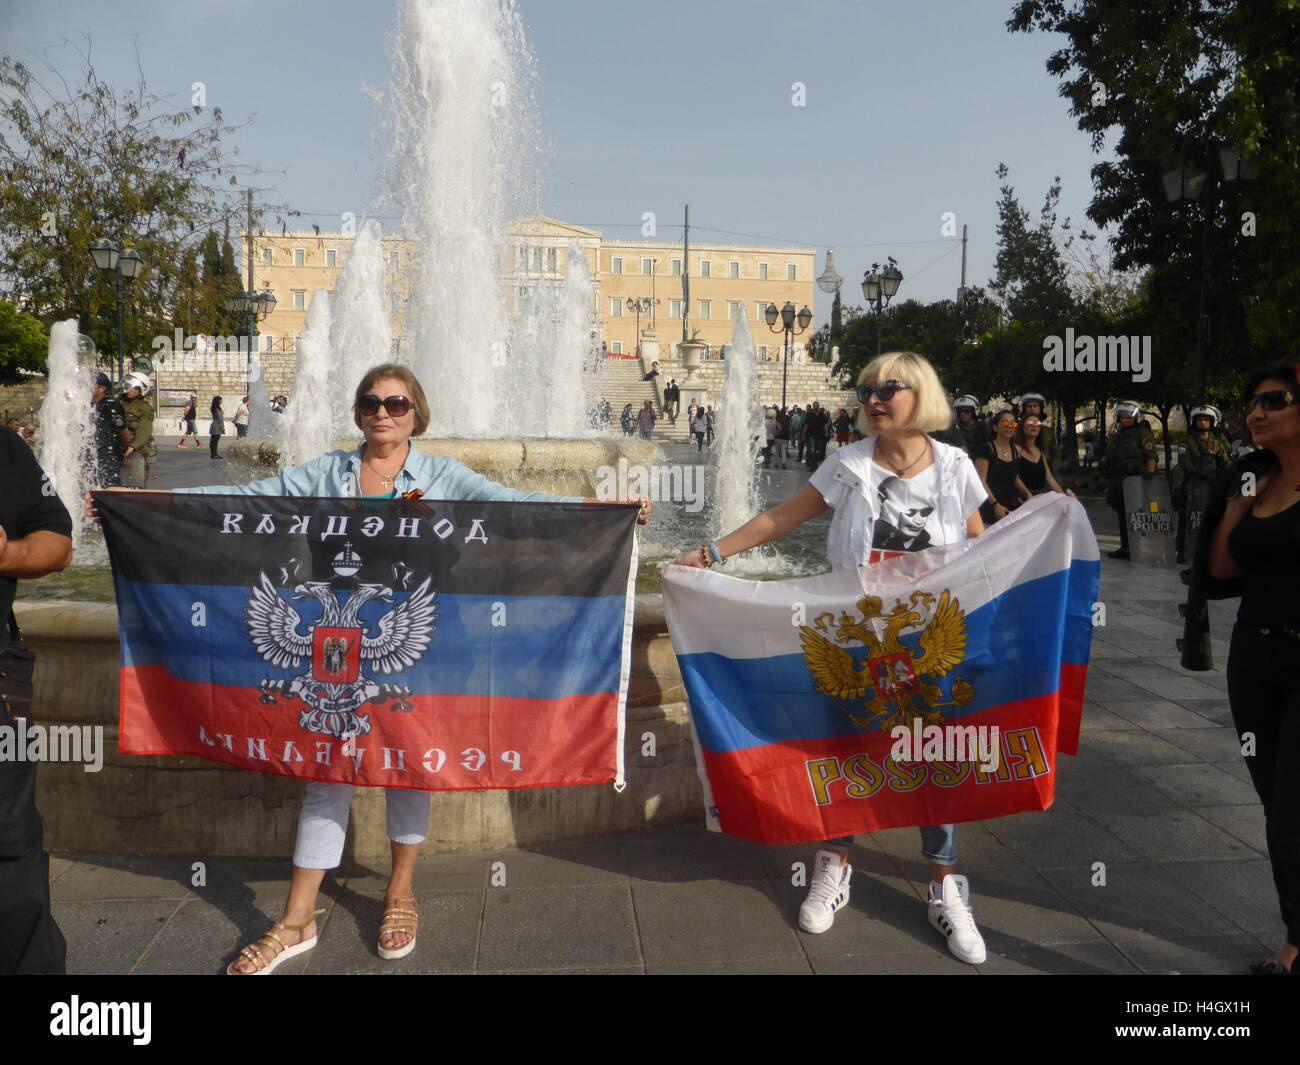 Athens, Greece. 16th Oct, 2016. Russians demonstrate in Syntagma square holdinng flags. Ukranian people demonstrate Stock Photo